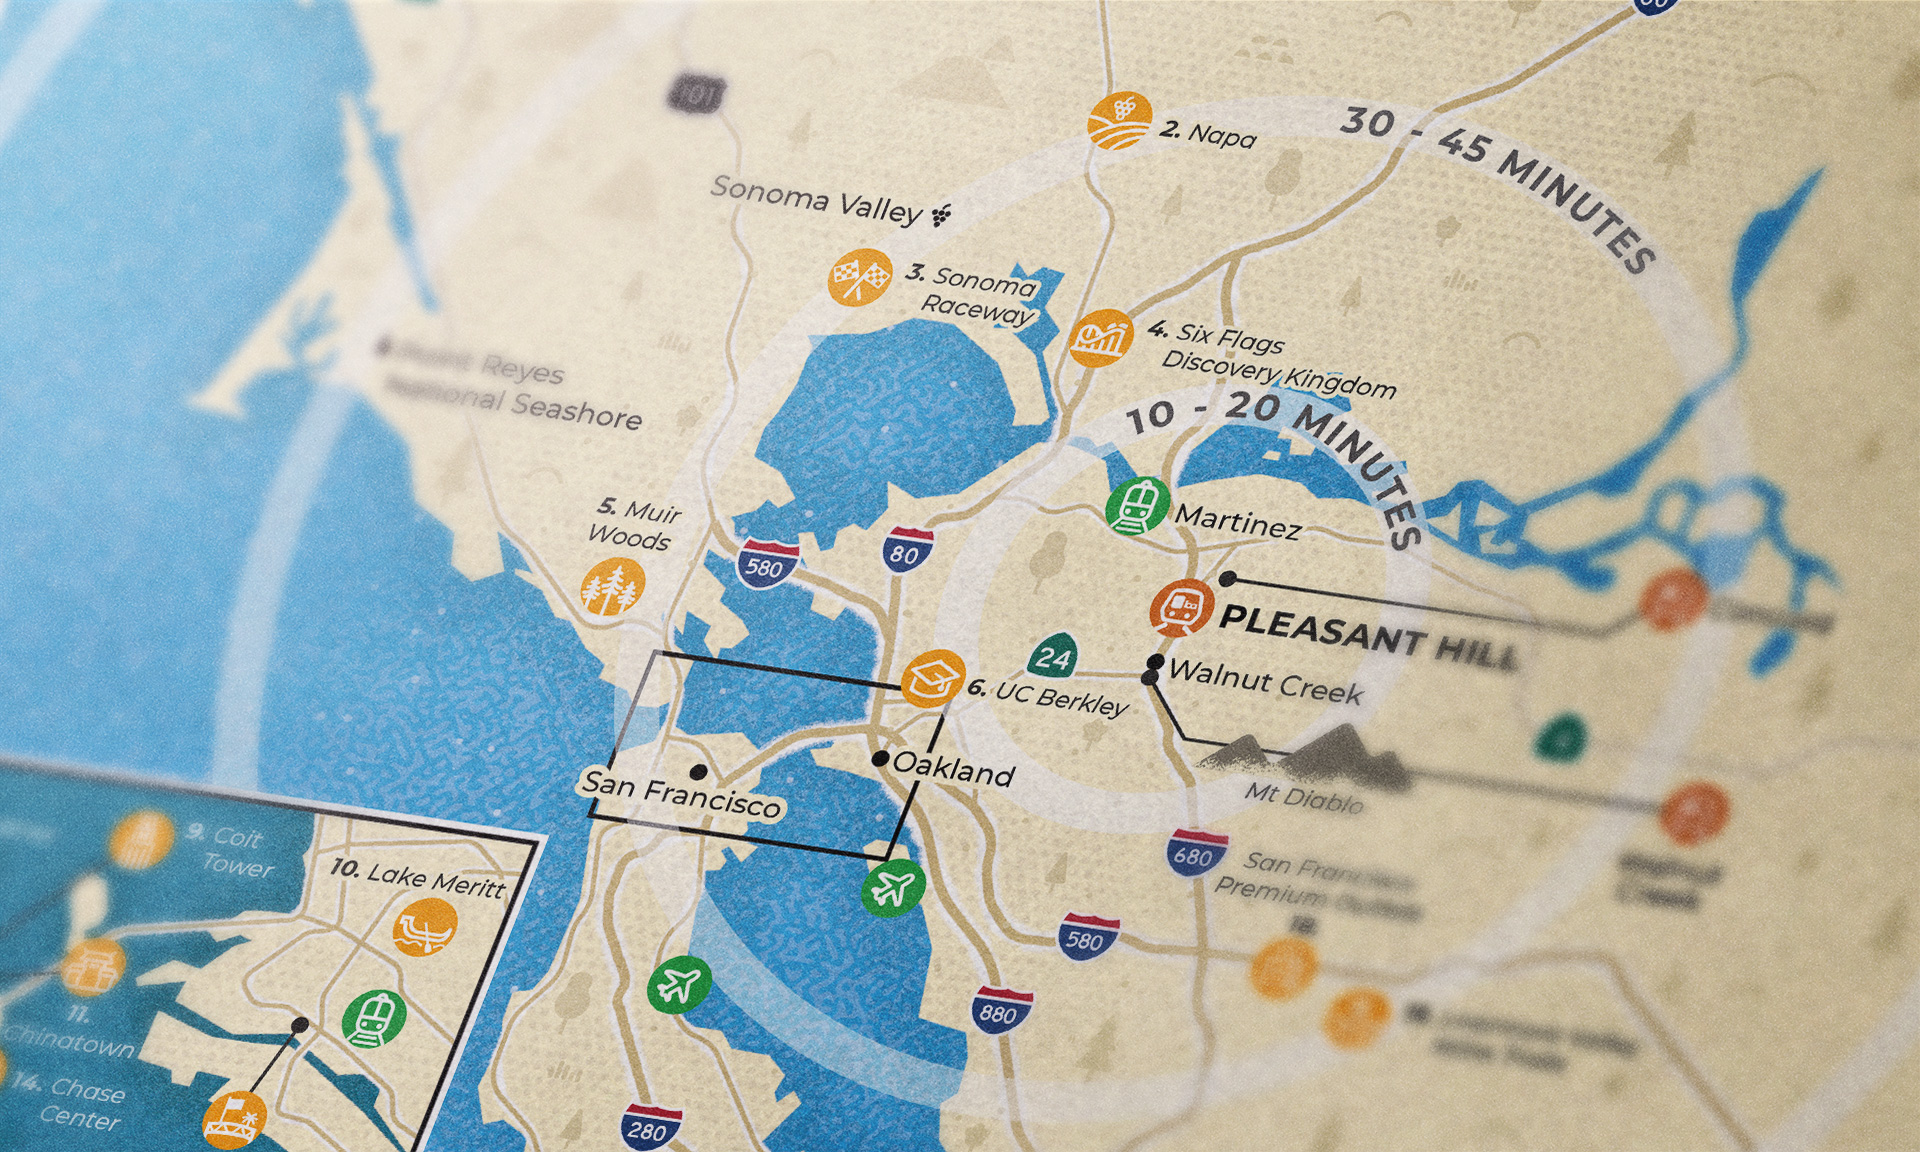 Pleasant hill map close-up